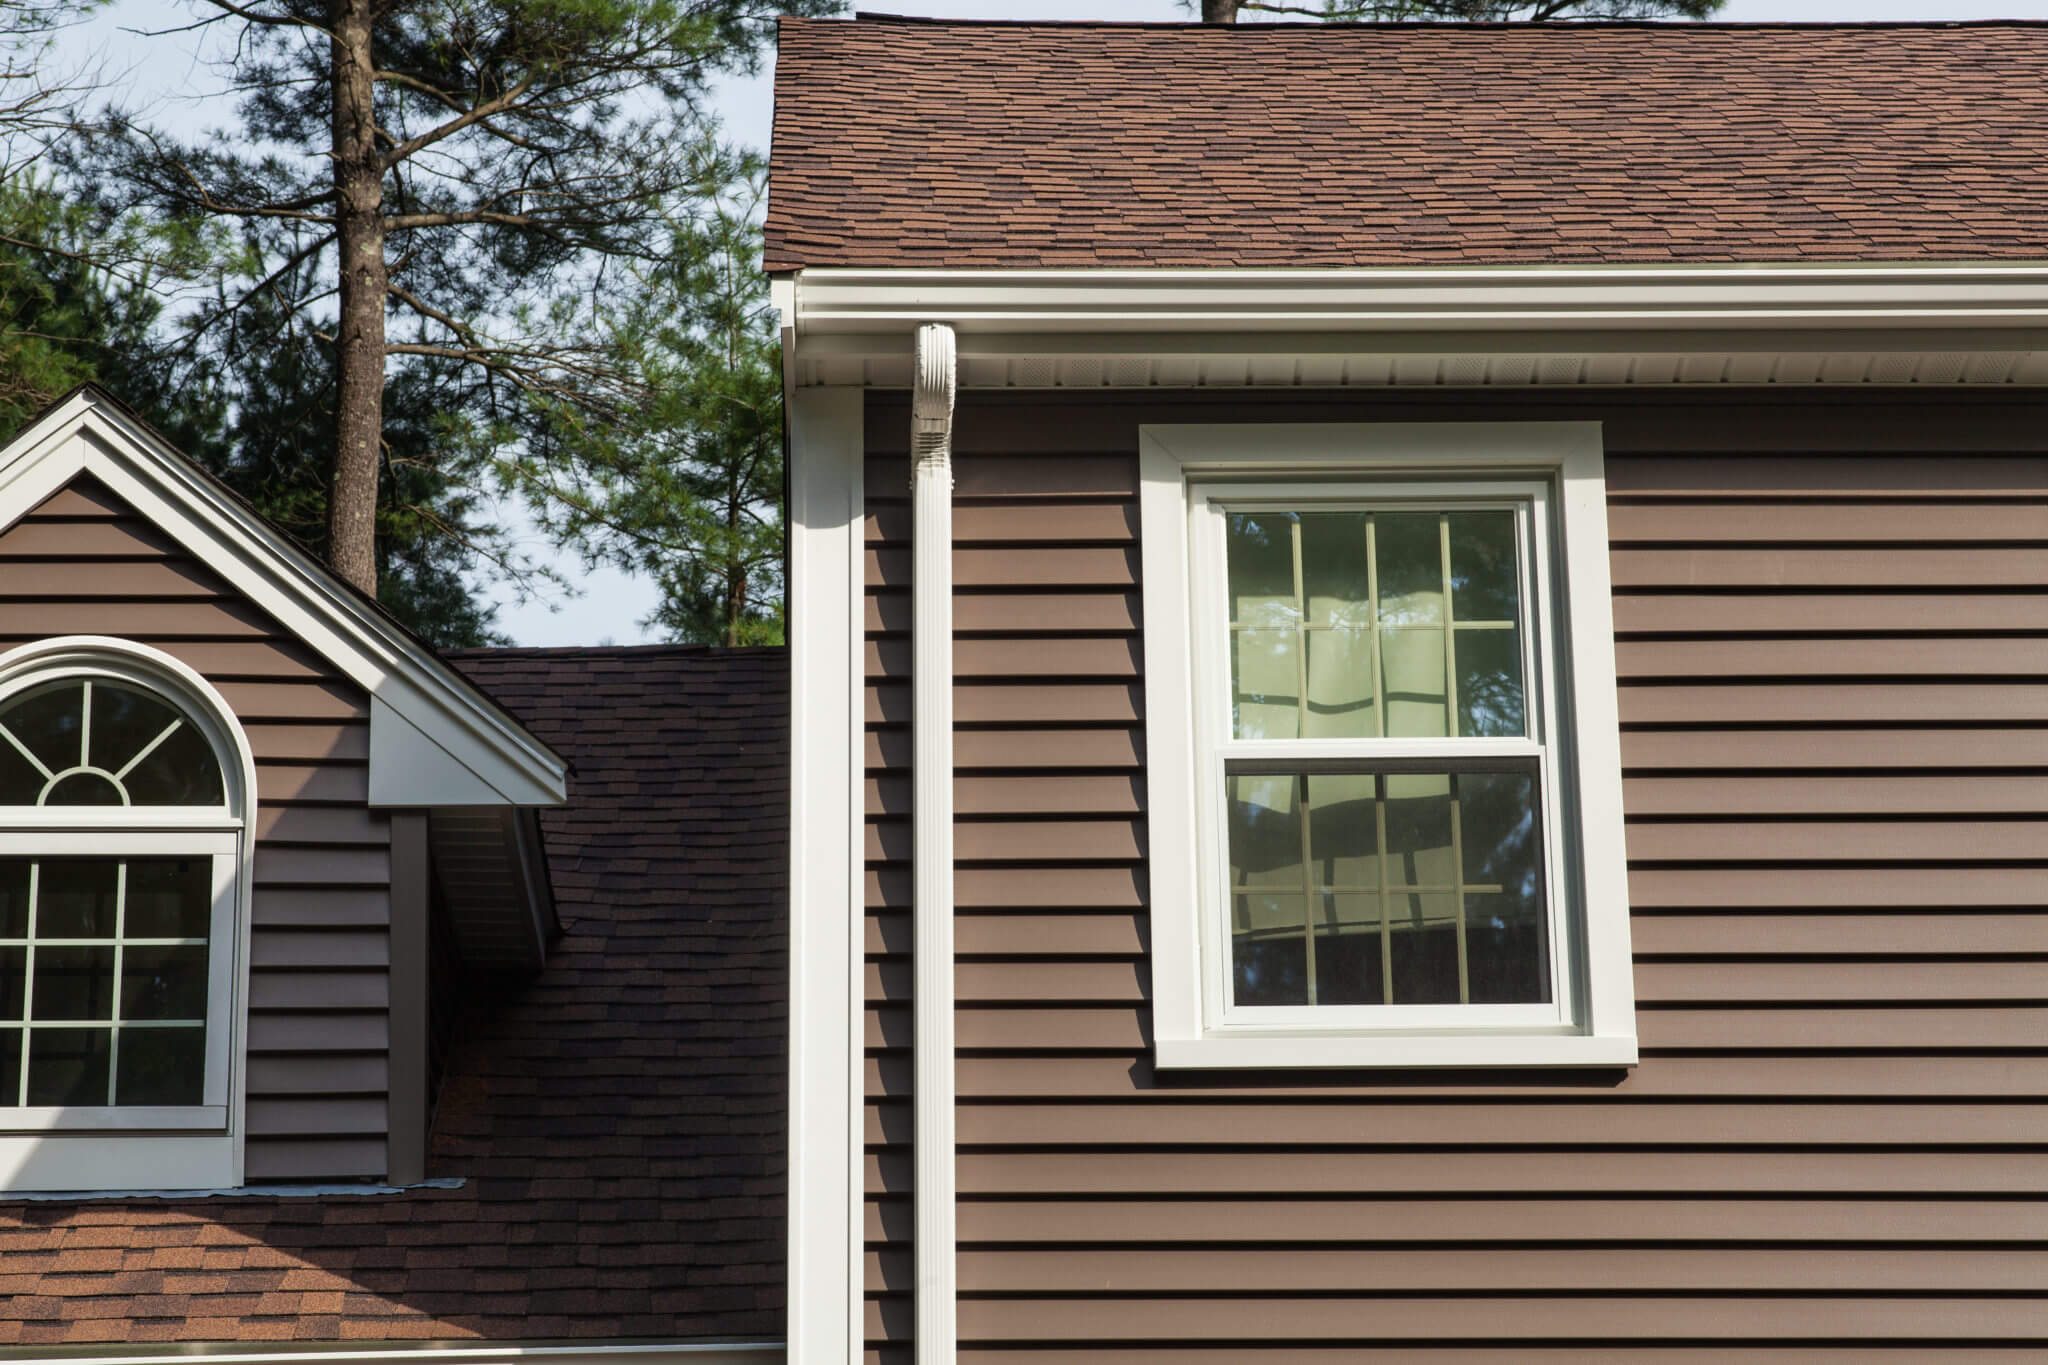 Exterior Home Remodel by Marshall Building & Remodeling in RI